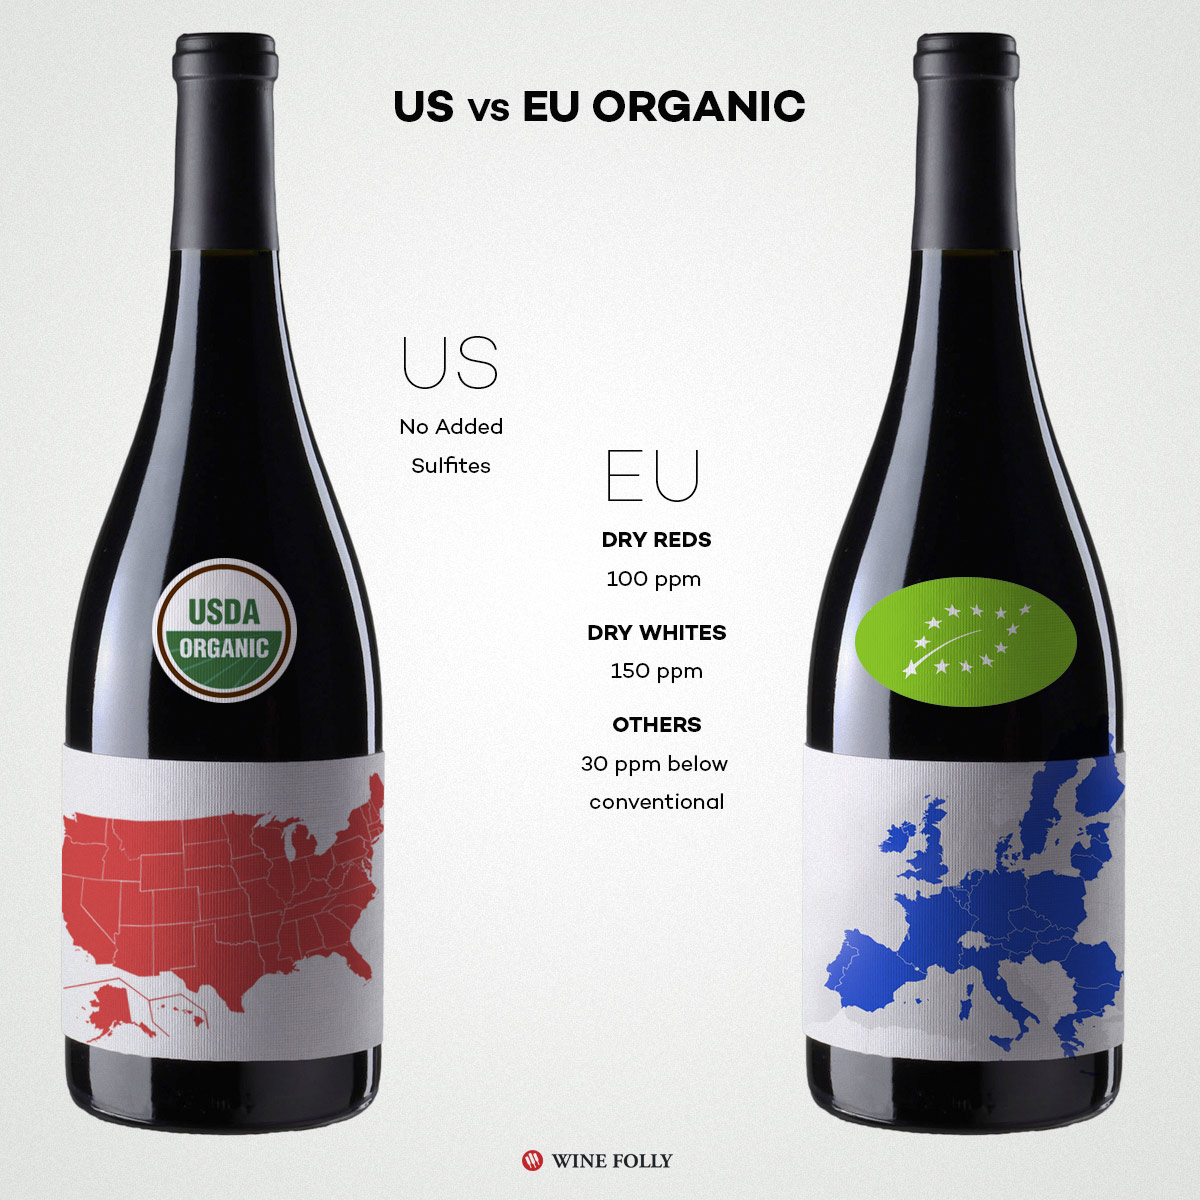 USDA vs EU organic wines